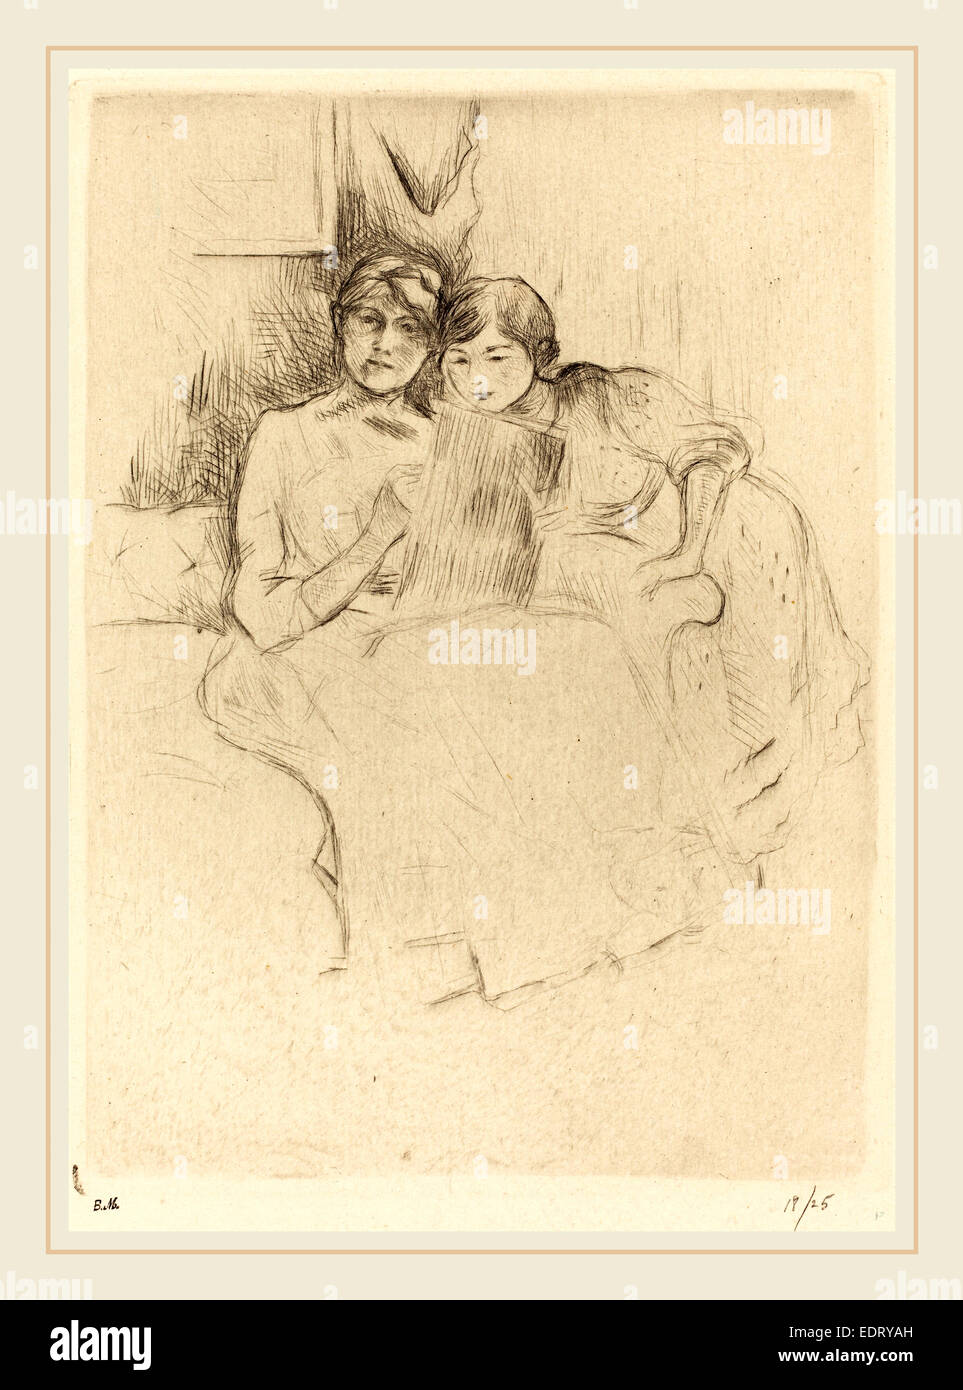 Berthe Morisot (French, 1841-1895), The Drawing Lesson, 1888-1890, drypoint [reprinted by Ambroise Vollard] - Stock Image